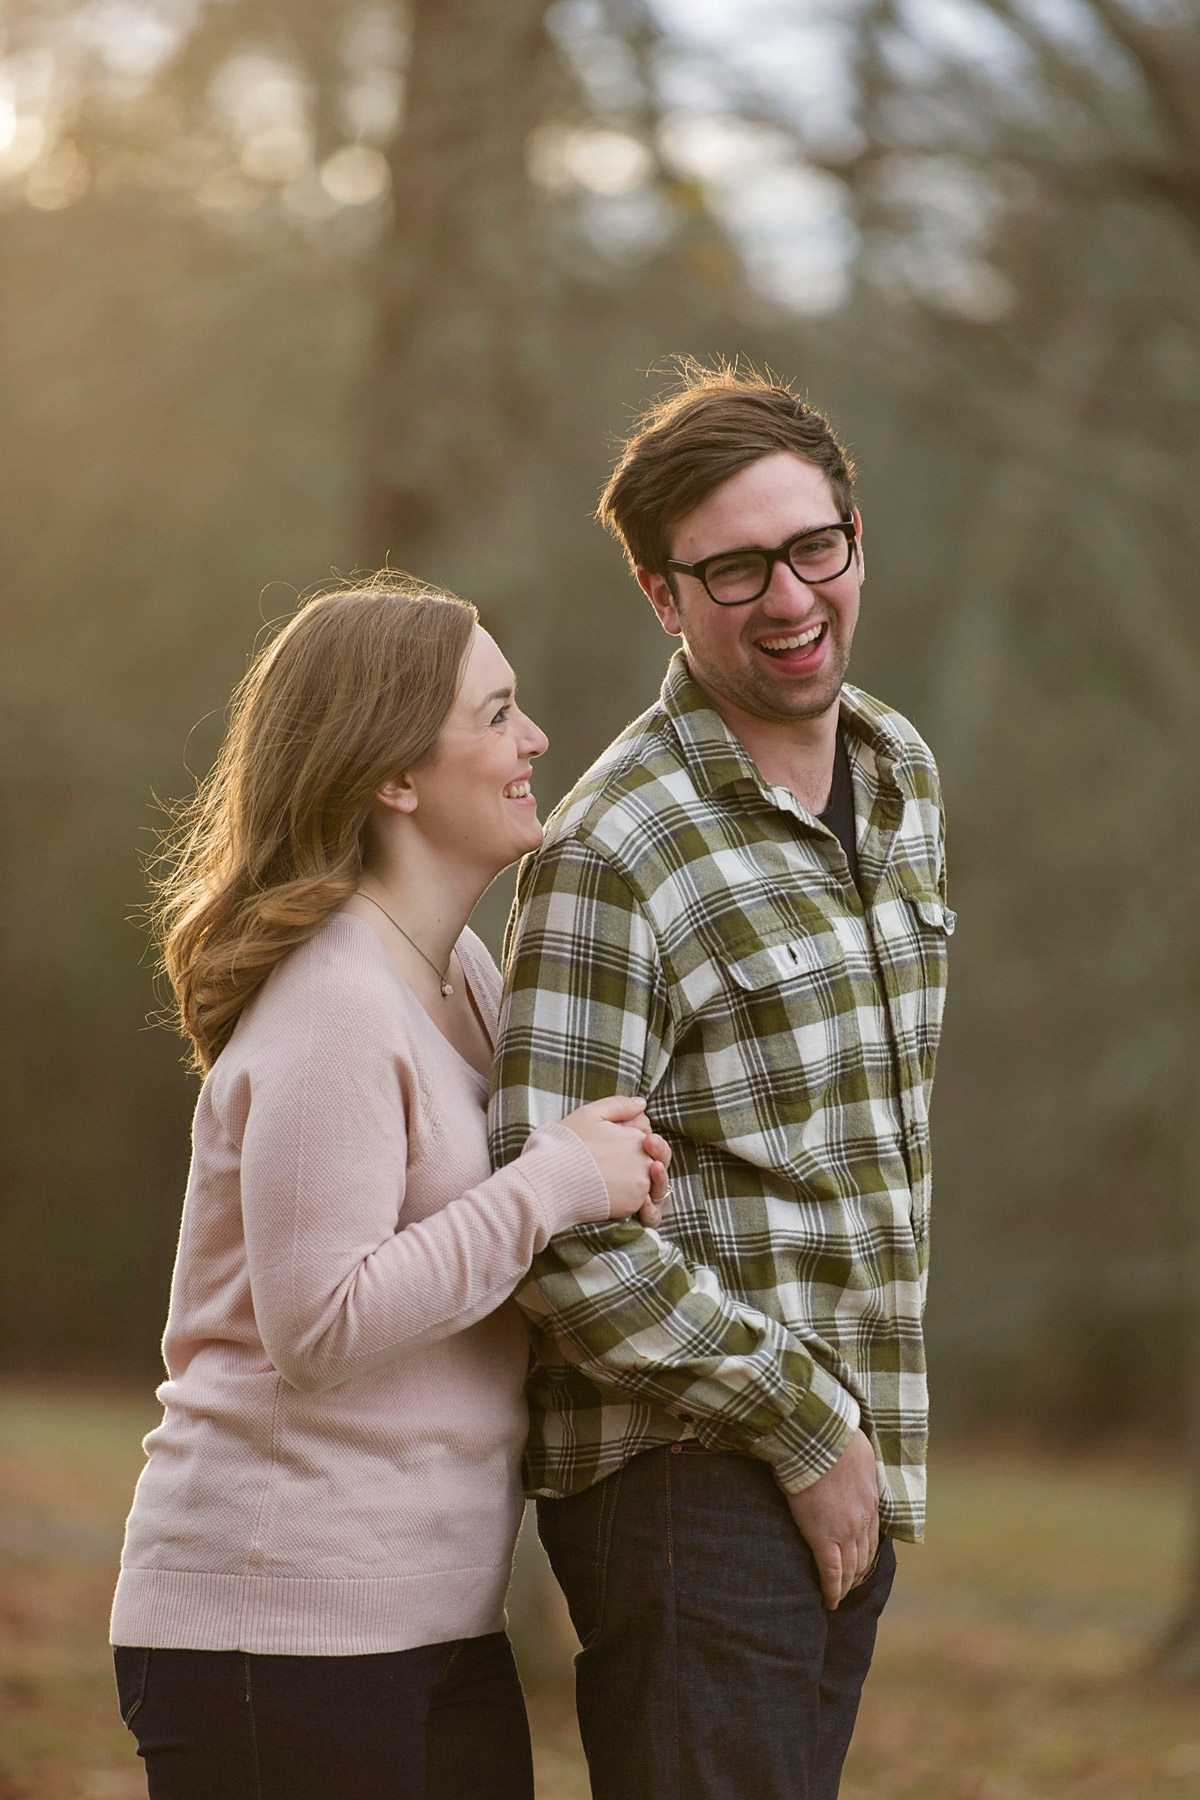 Bucks_county_engagement_session_Tinicum_Park_woman_makes_man_laugh.JPG